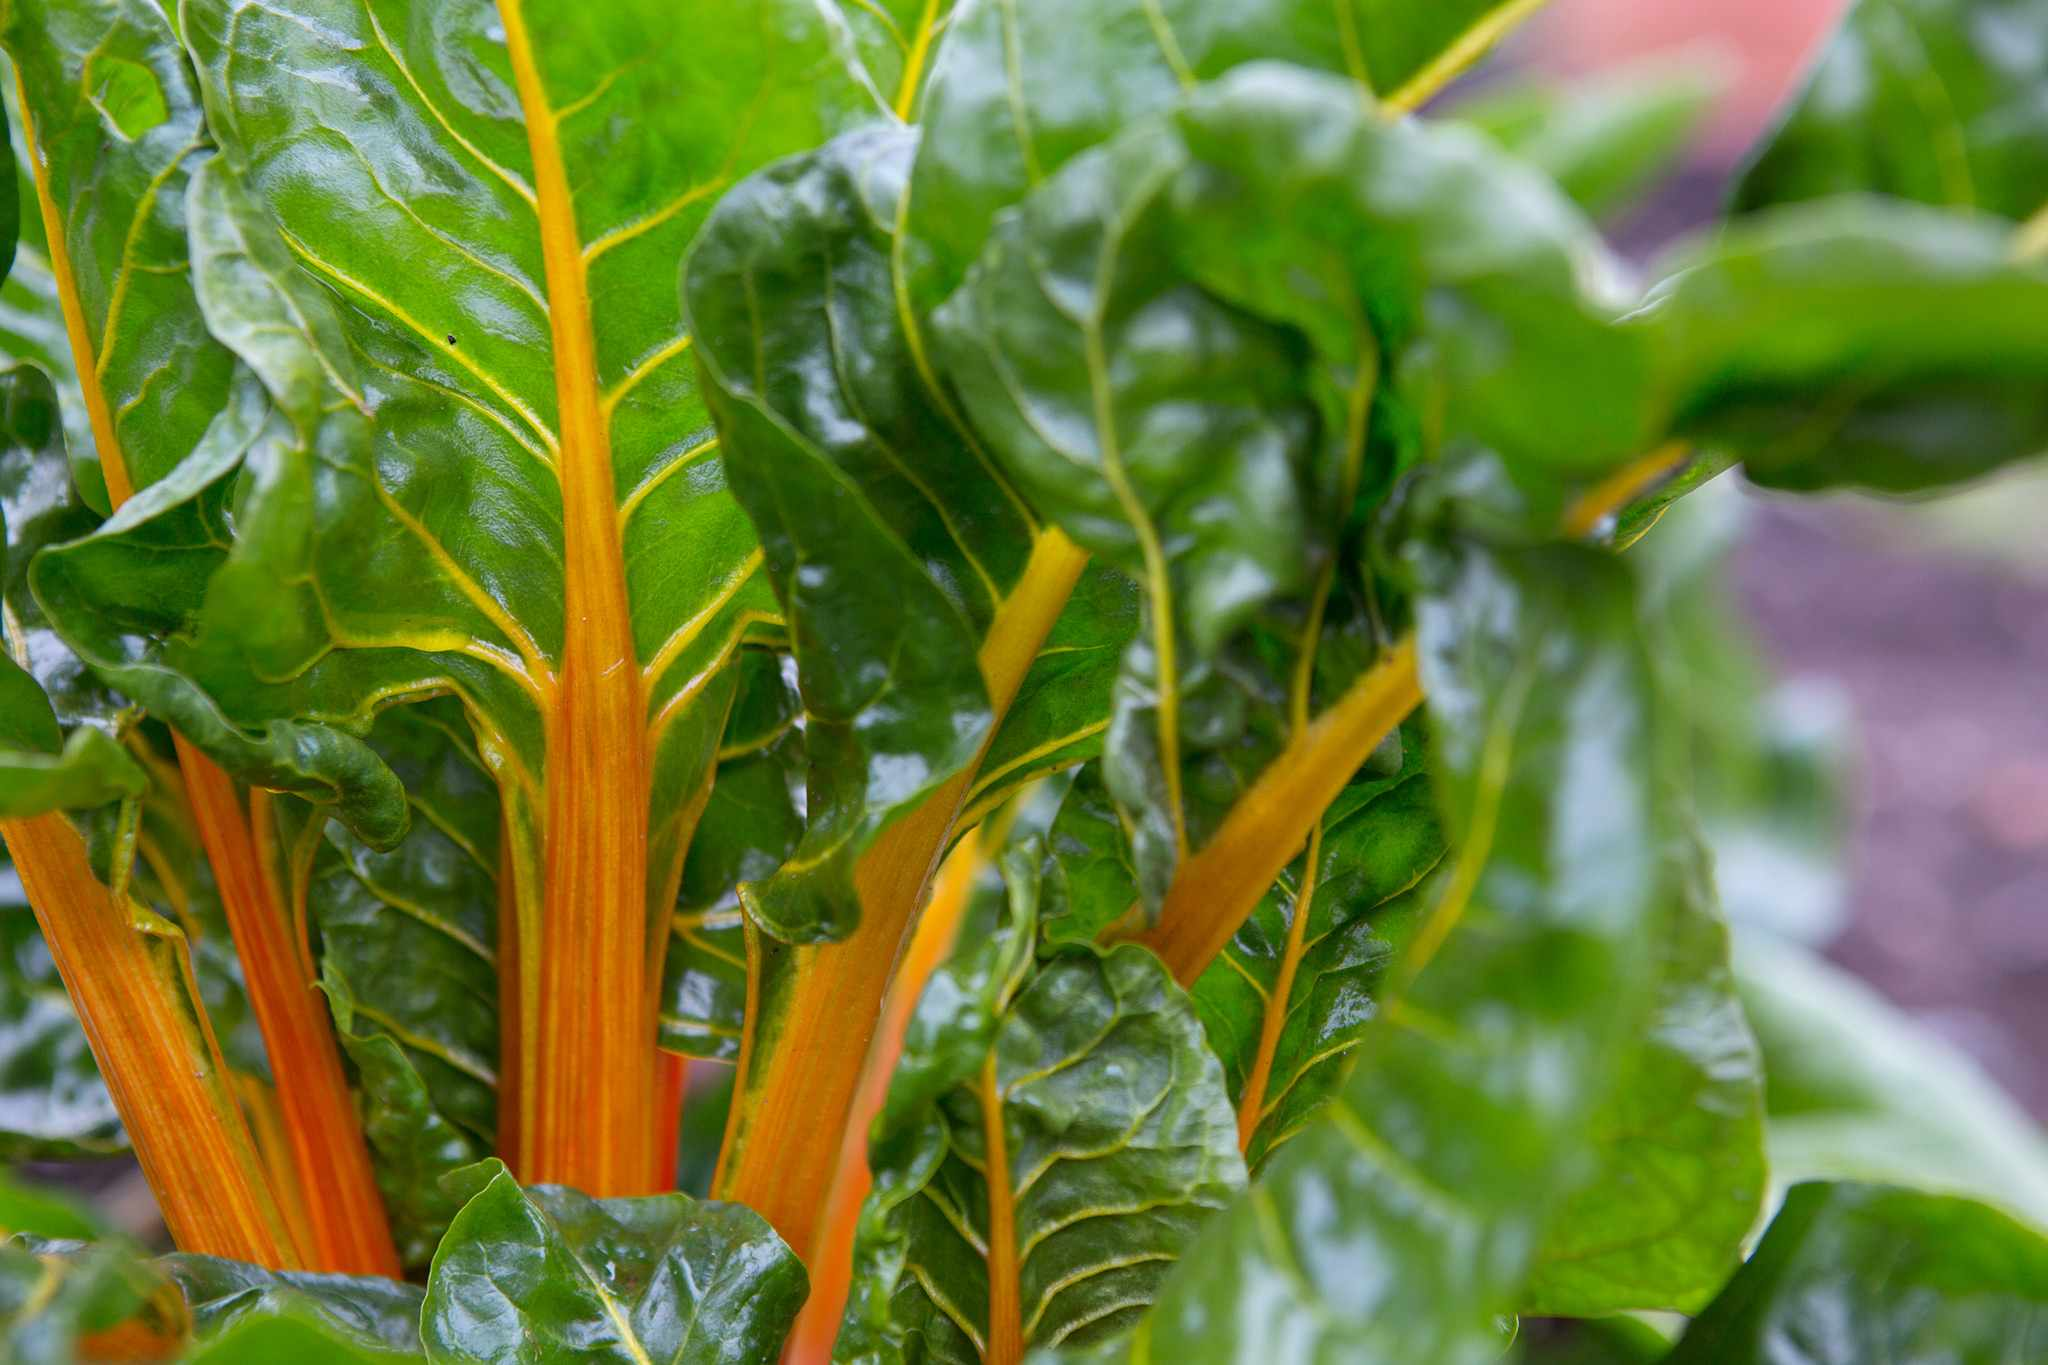 Yellow-stemmed Swiss chard ready to harvest